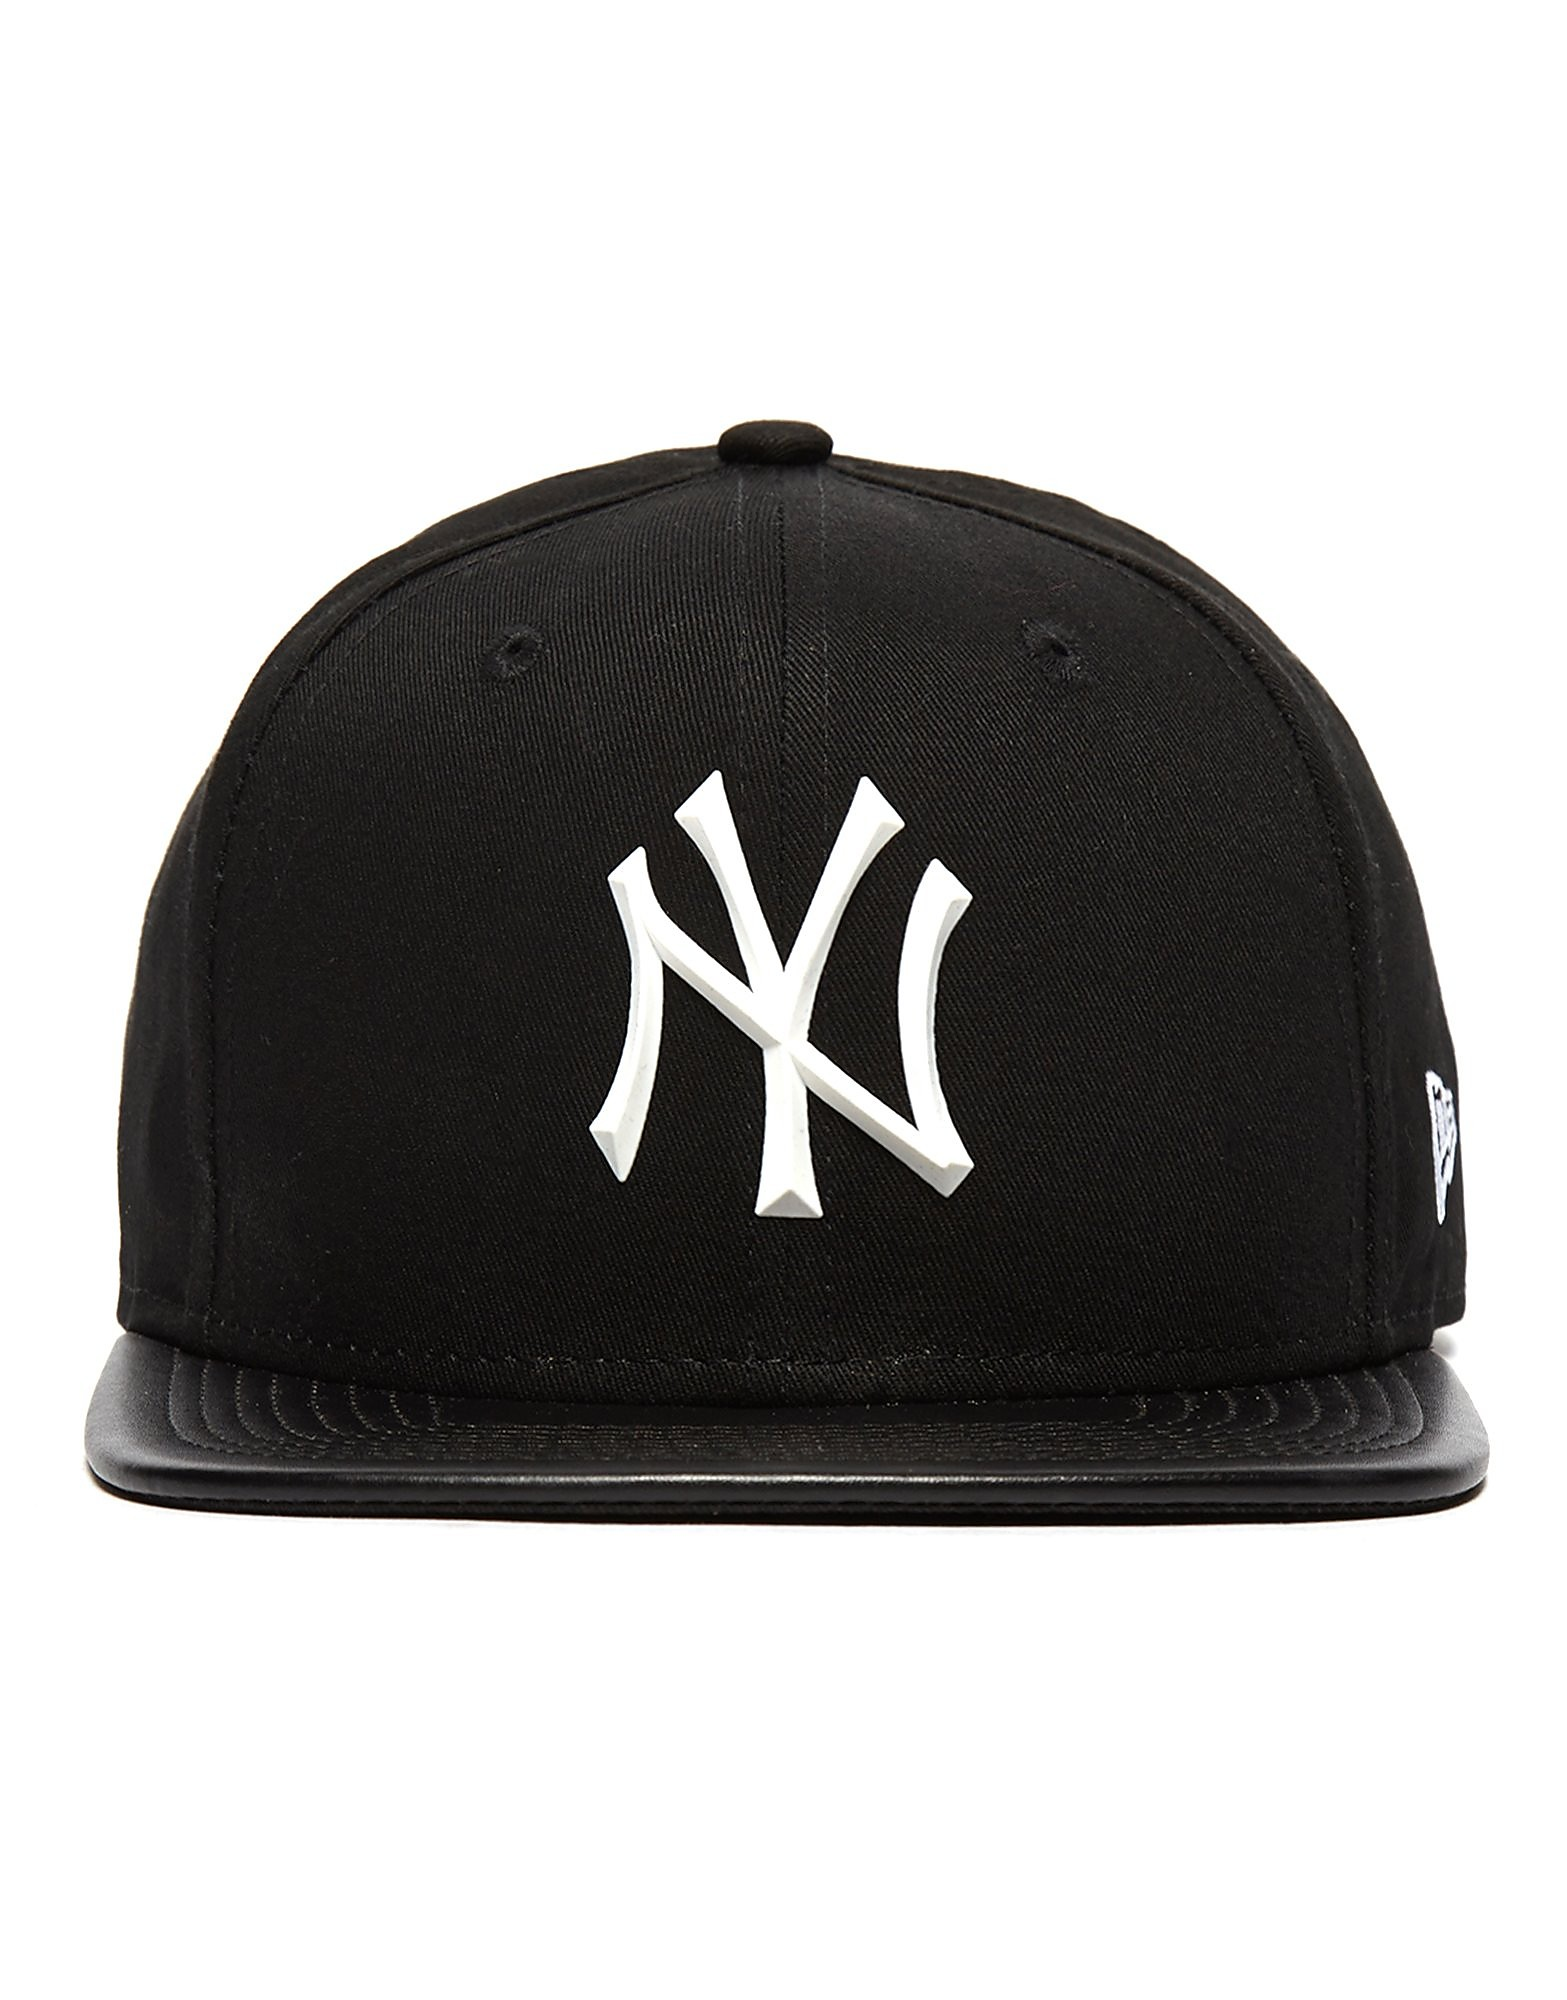 New Era 9FIFTY MLB New York Yankees Prime Snapback Cap